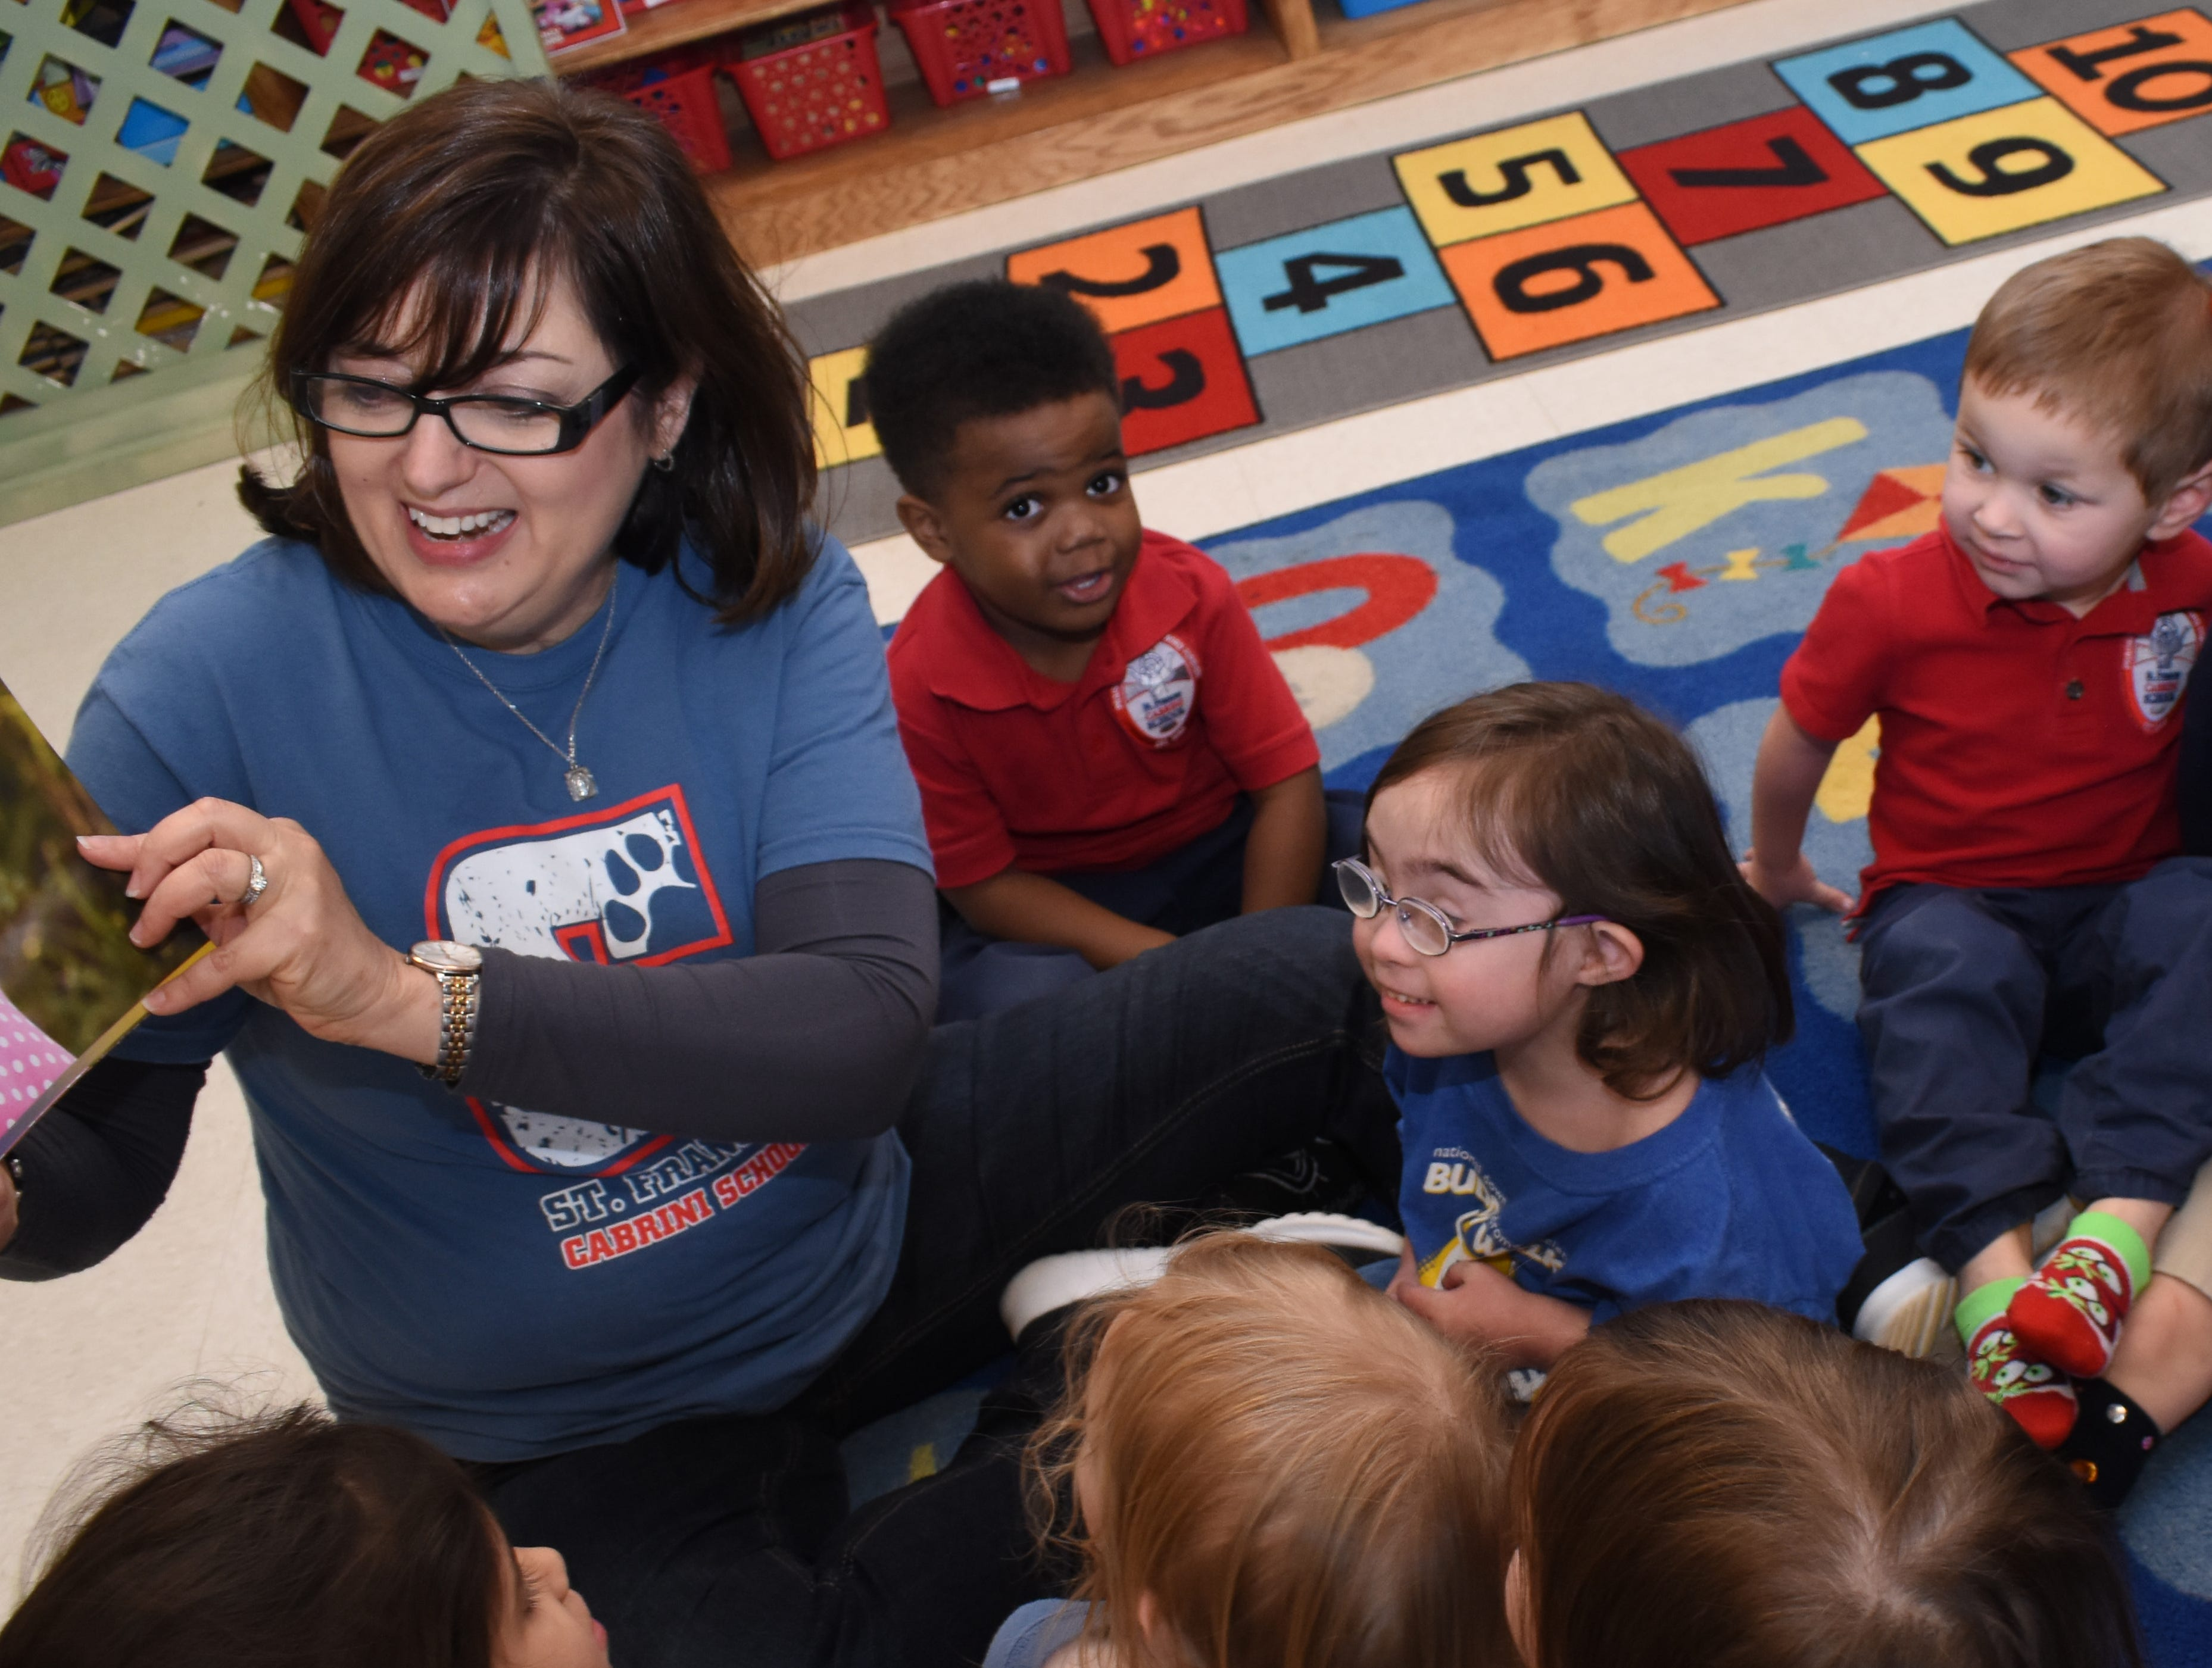 """Students at St. Frances Cabrini School celebrated World Down Syndrome Day Thursday, March 21, 2019. """"Rock Your Socks"""" was the theme for the day. For $2 students could wear crazy socks with jeans and a spirit shirt. Gail Callahan (left), a pre-Kindergarten three teacher, read a book to her class written by another Cabrini teacher Ashley Distefano, titled """"The Upside of Downs."""" The book was written for Distefano's daughter Elizabeth Butler, 4 (right, in blue), a student of Callahan's, who has Down syndrome. The book also features another Cabrini student who has Down, Sydney Rud, 4,whose photo is shown in the book."""